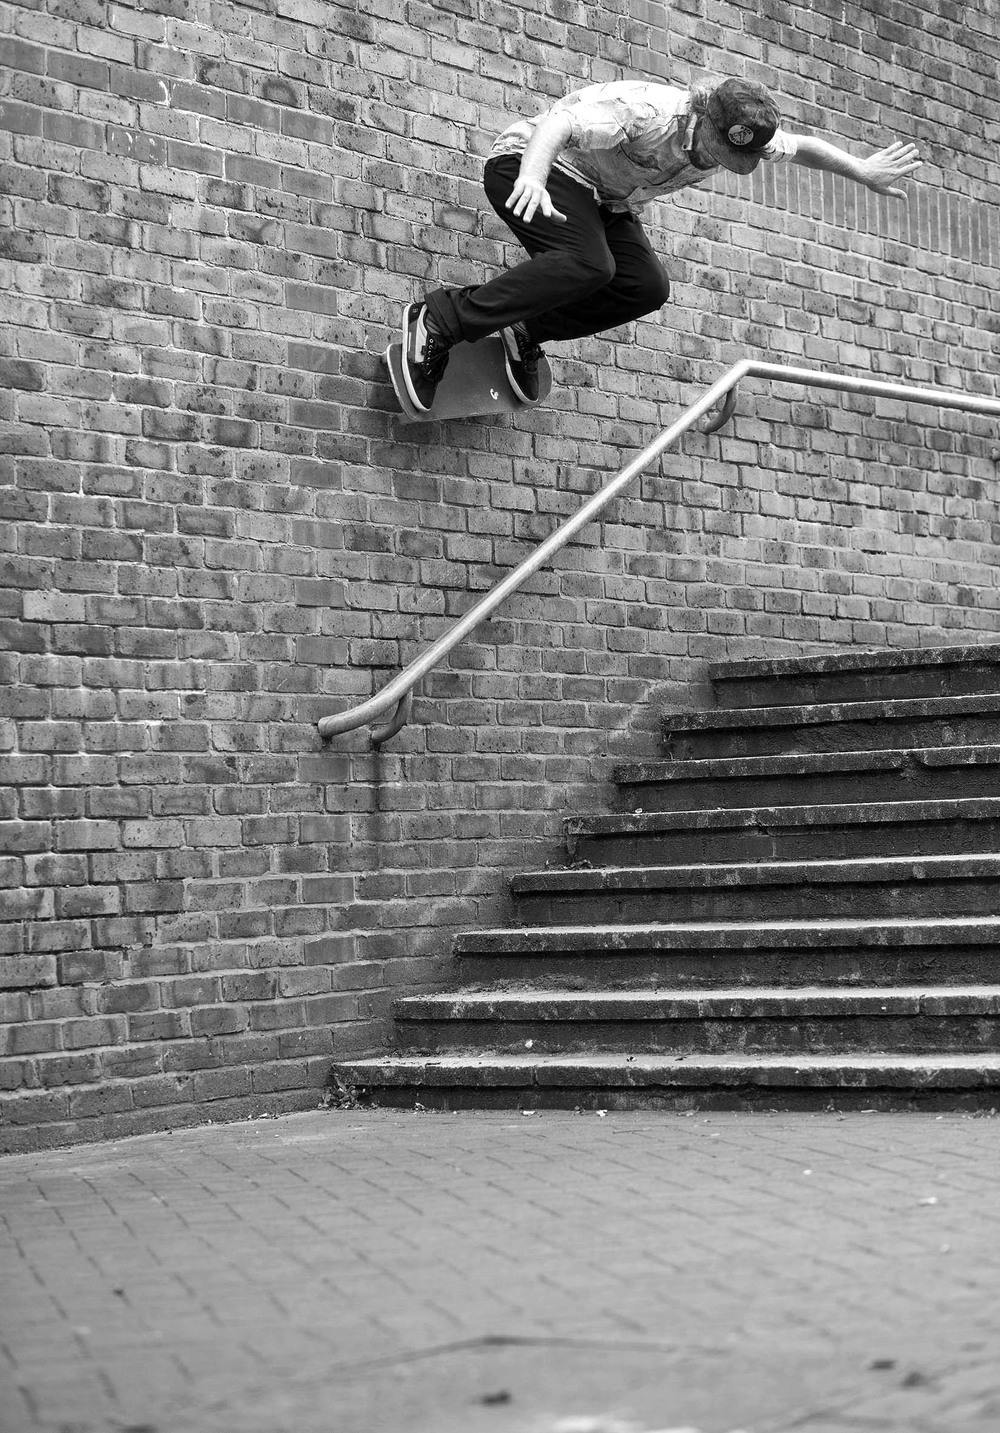 Barney Page - ollie over to wallride